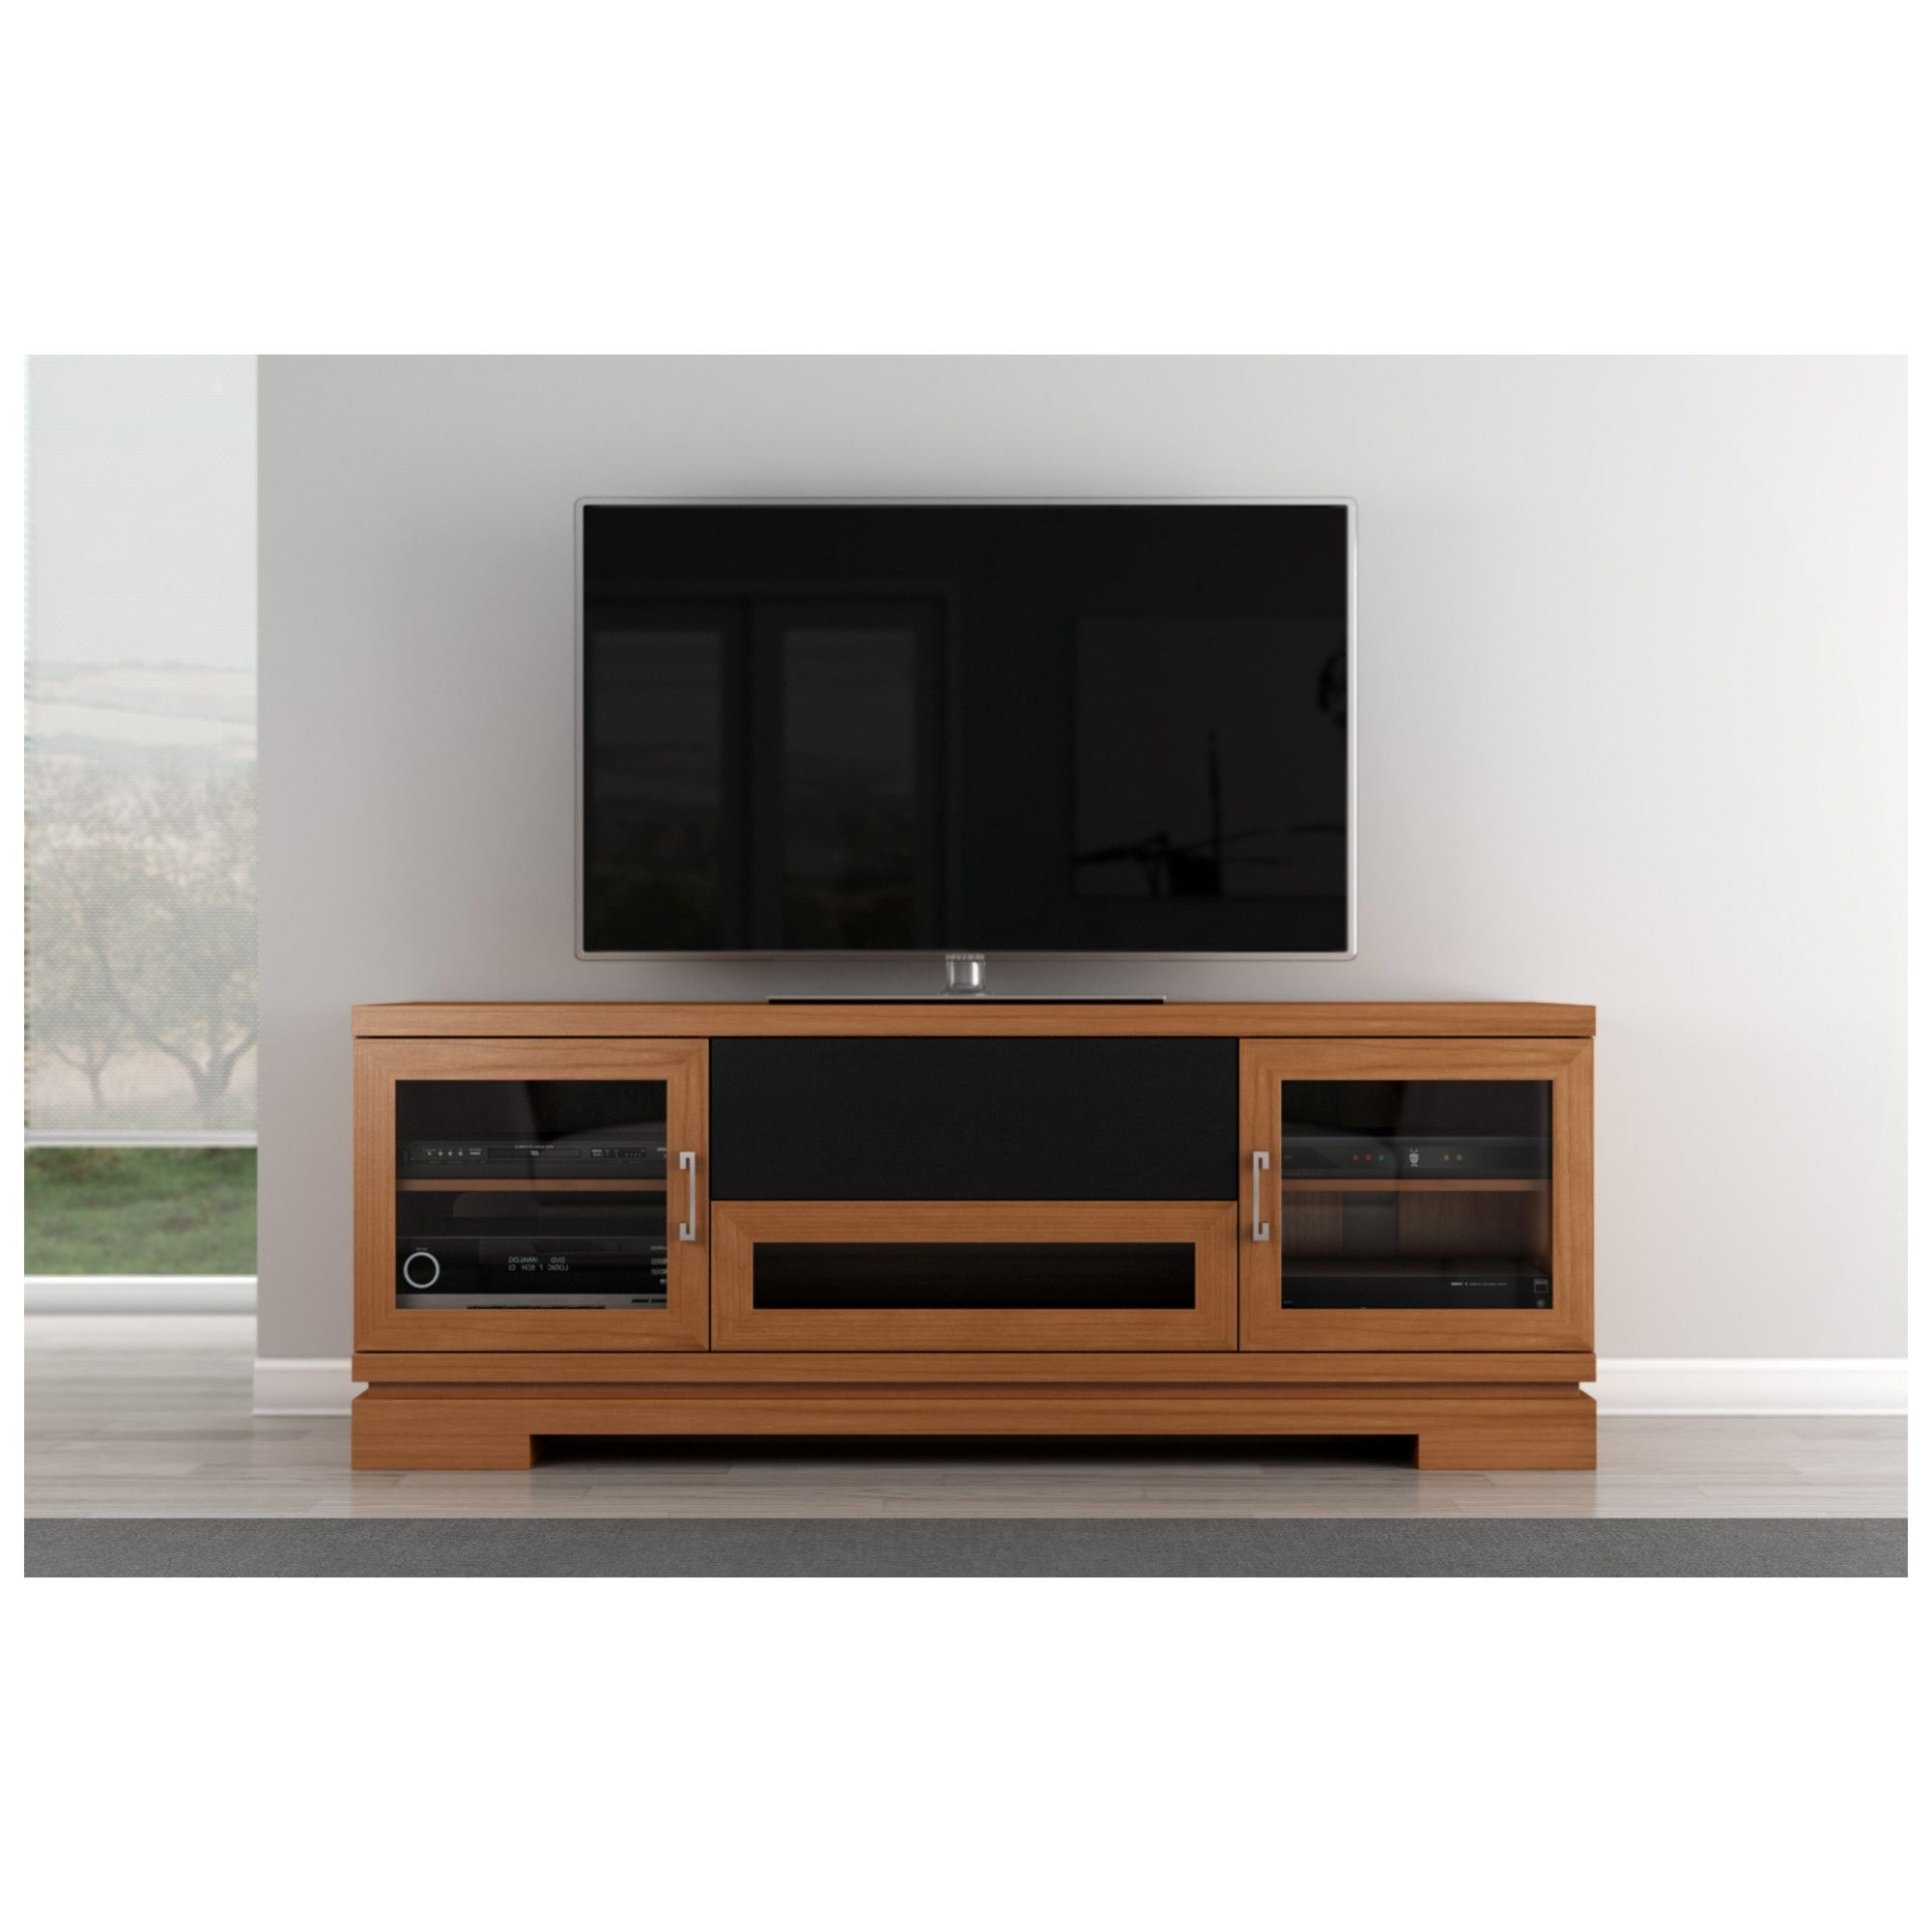 "Preferred Contemporary Modern Tv Stands Pertaining To 70"" Tv Stand Contemporary Media Cabinet W/ Center Speaker Opening In (Gallery 20 of 20)"